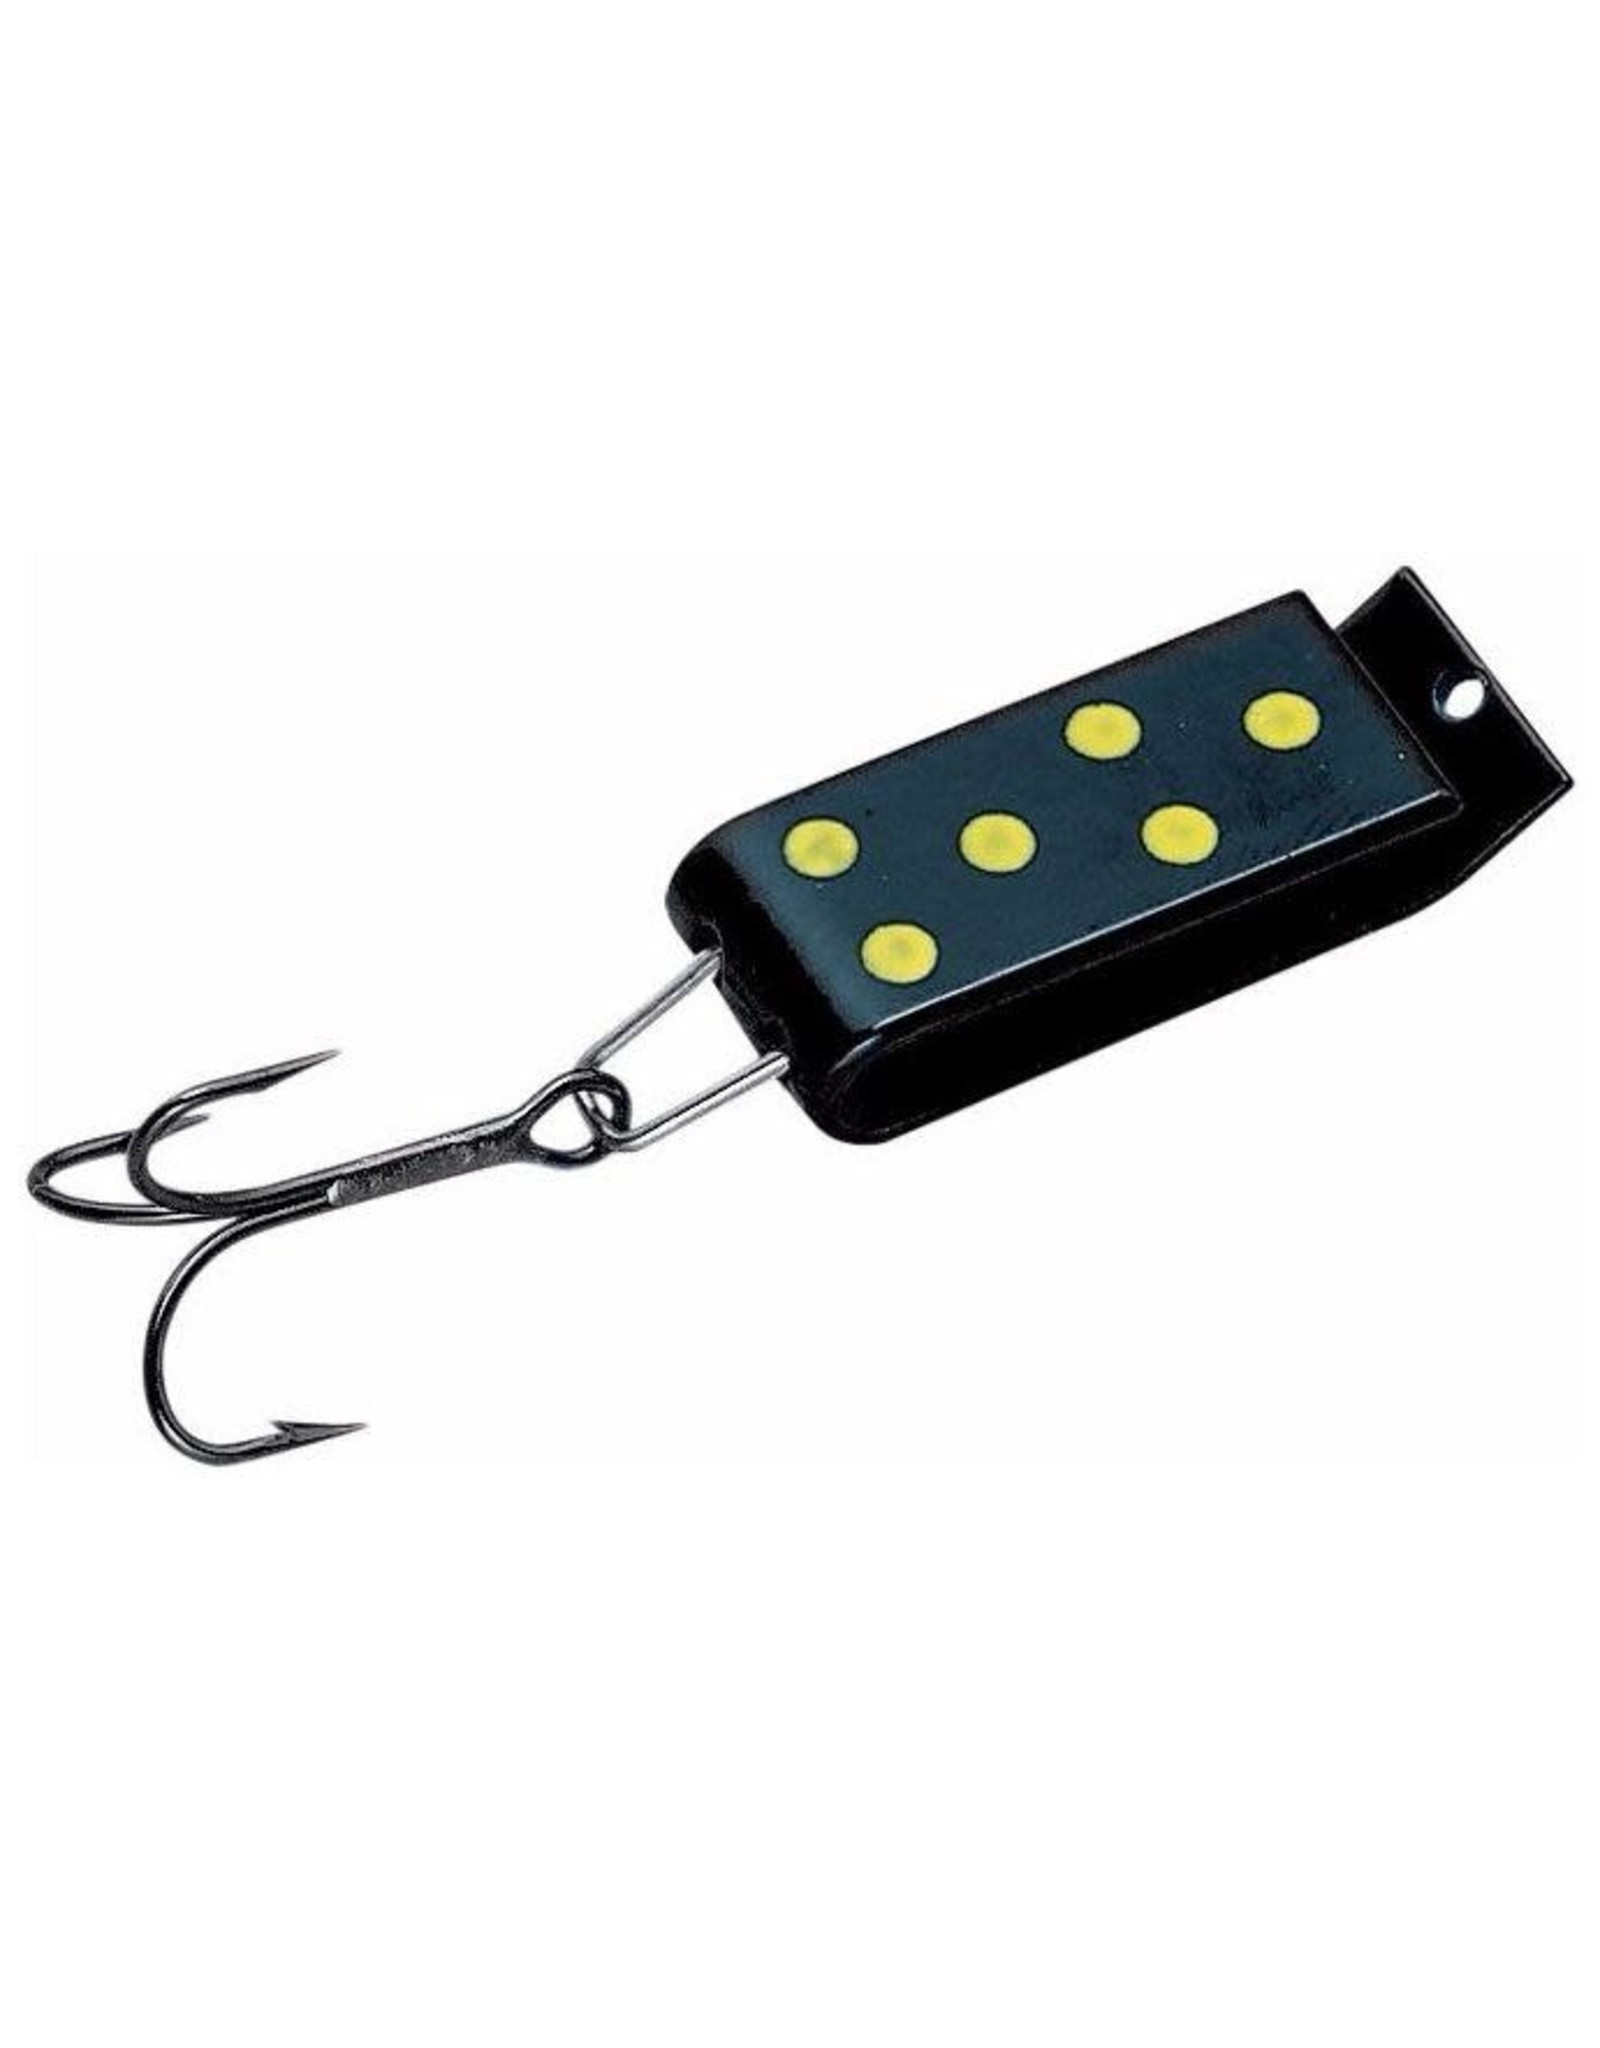 Jake's Jake's Spin-A-Lure 1/4 Oz. - Black w/ Yellow Spots